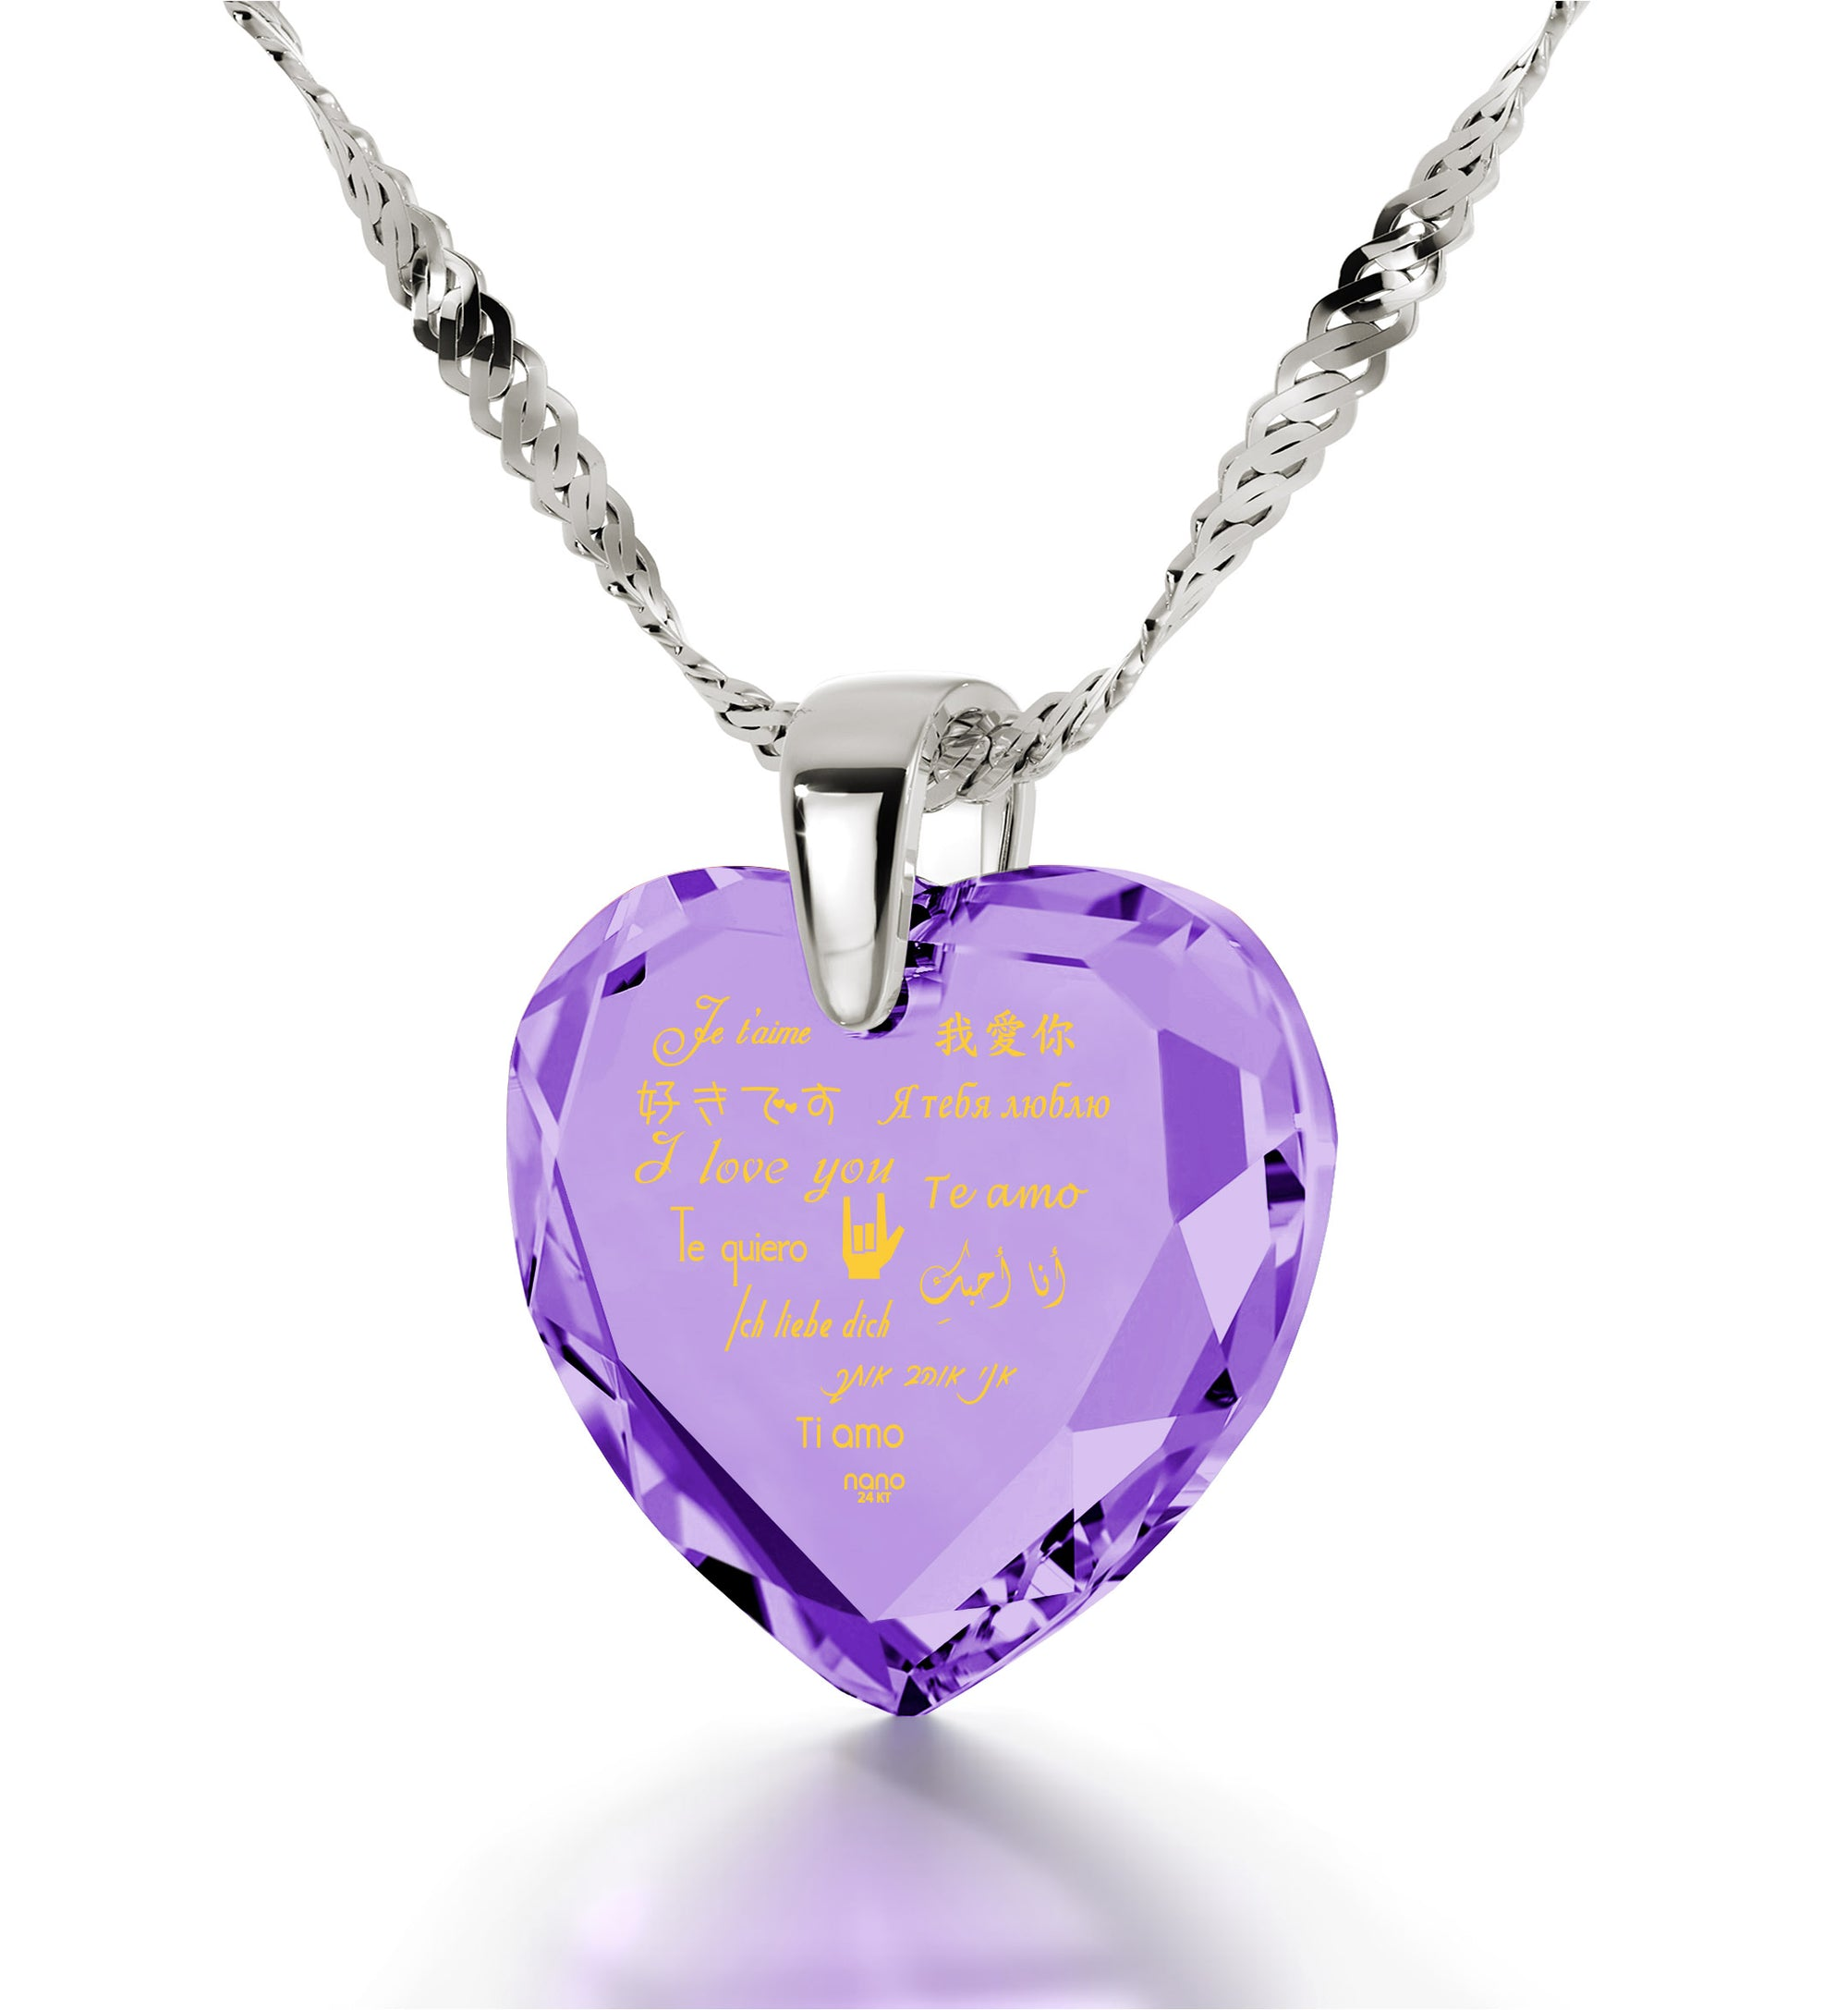 products pendant silver necklace moon necklaces purple heart dark choker hollow in the glowing chain plated dnzshop